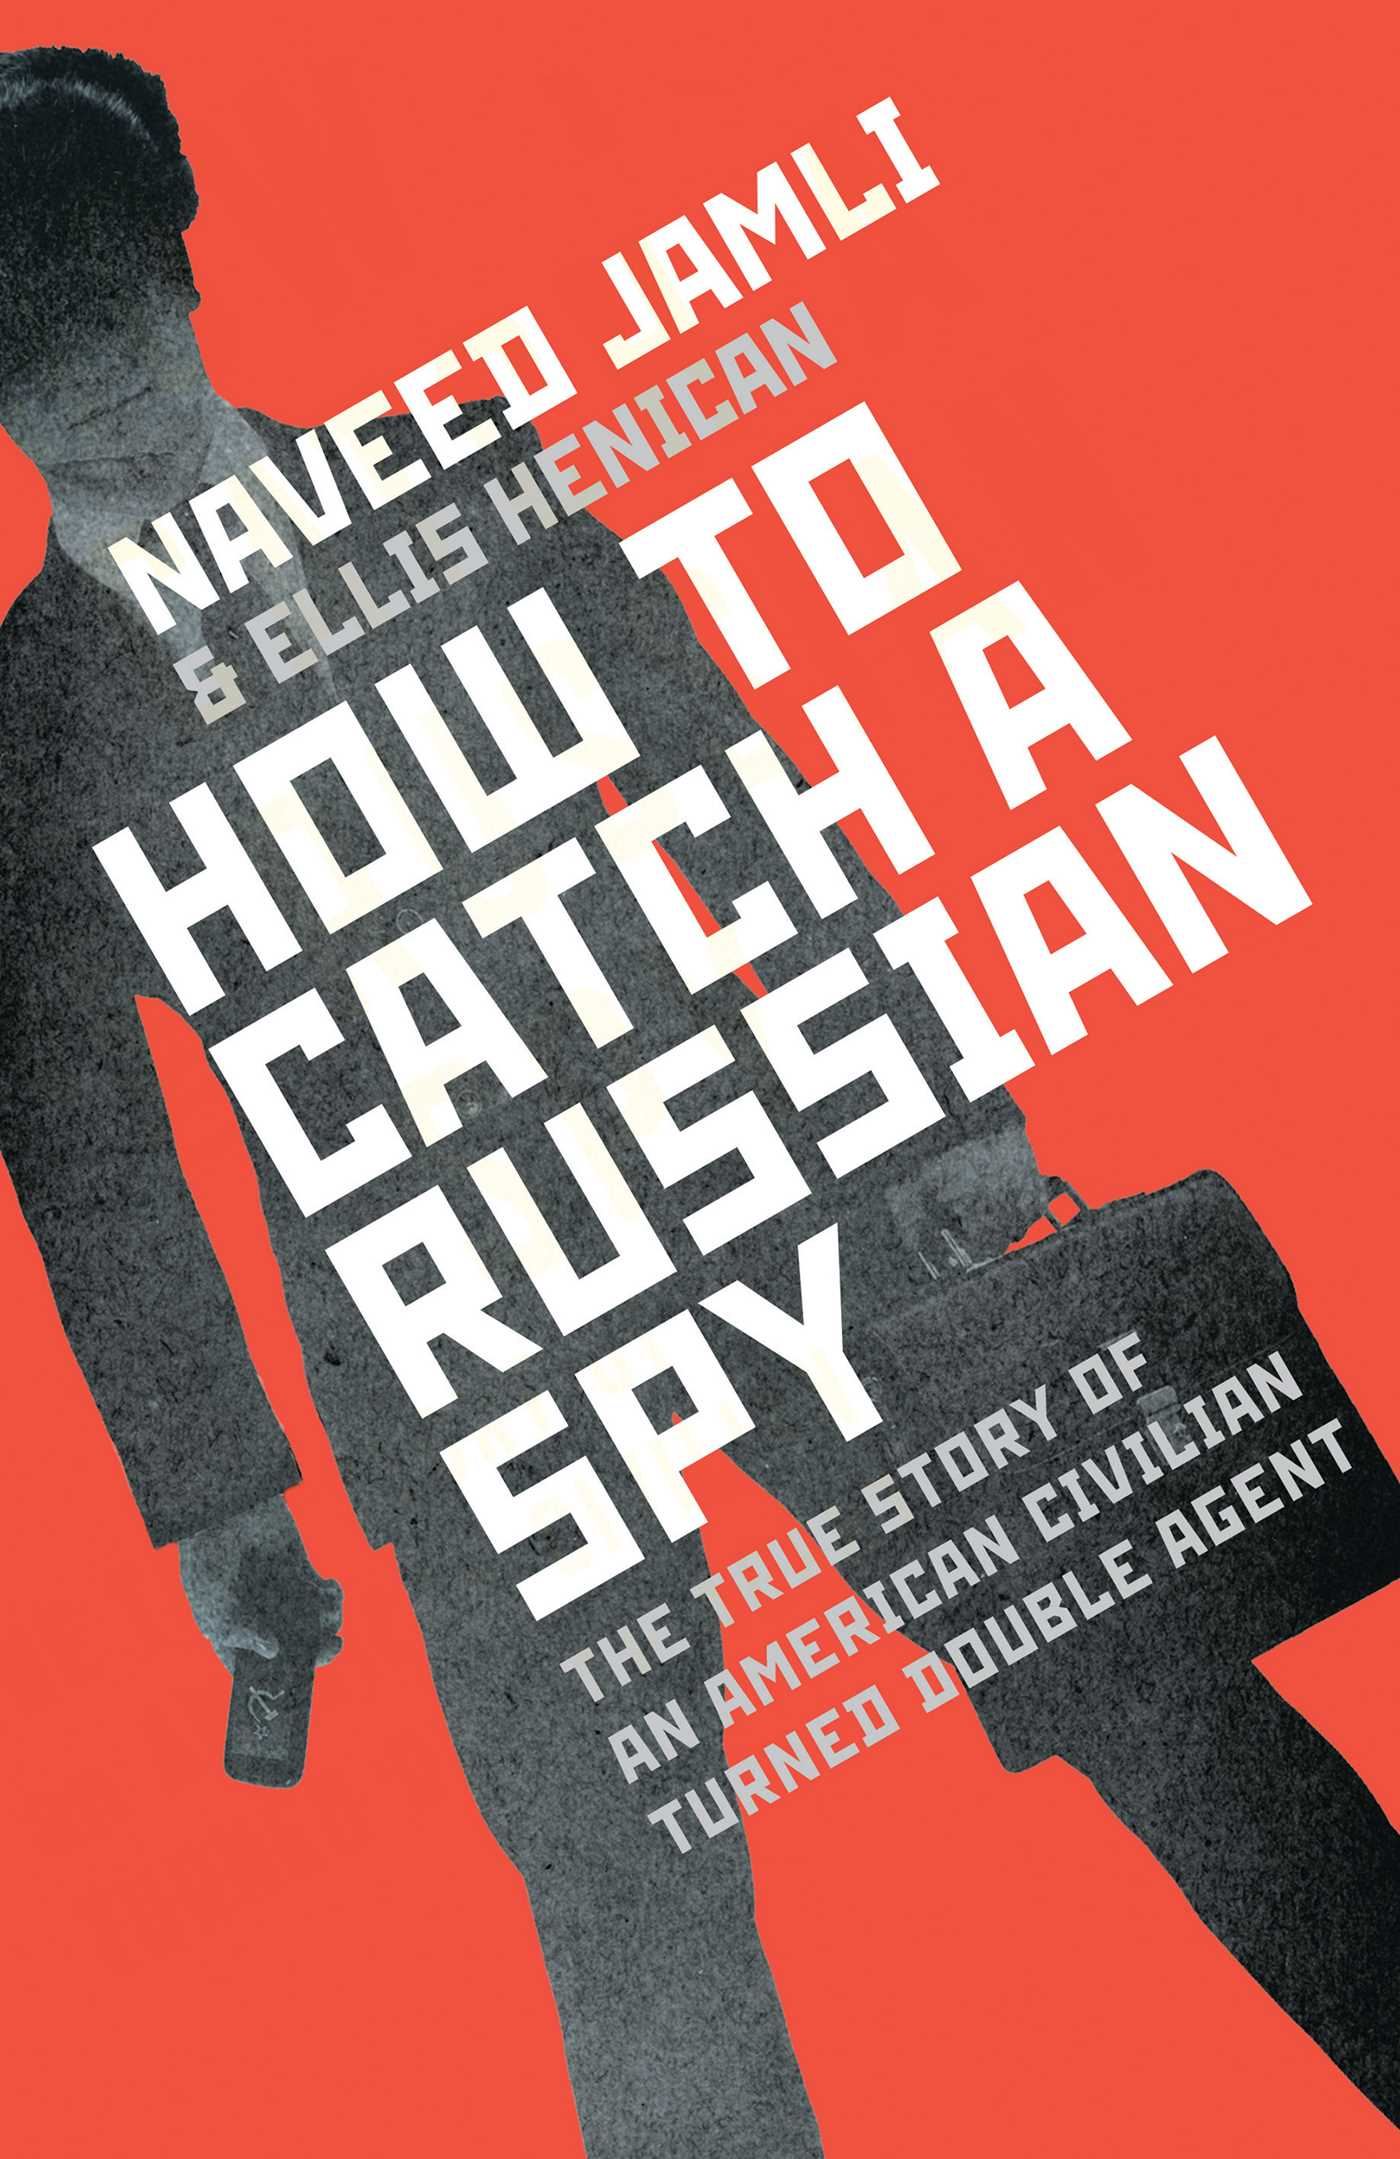 how-to-catch-a-russian-spy-9781471140884_hr.jpg